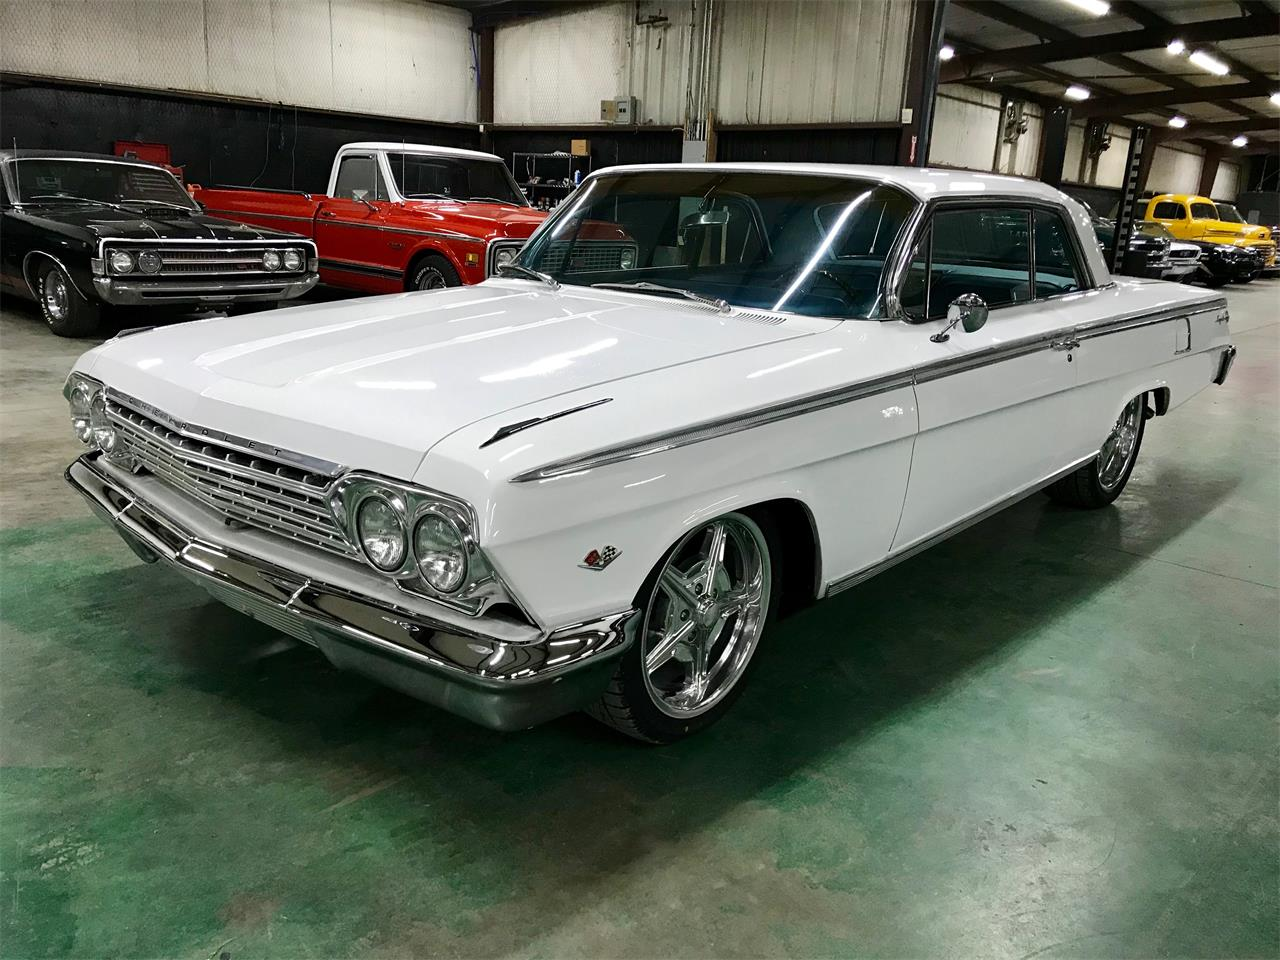 Large Picture of Classic 1962 Chevrolet Impala located in Sherman Texas - $29,000.00 - PZ48